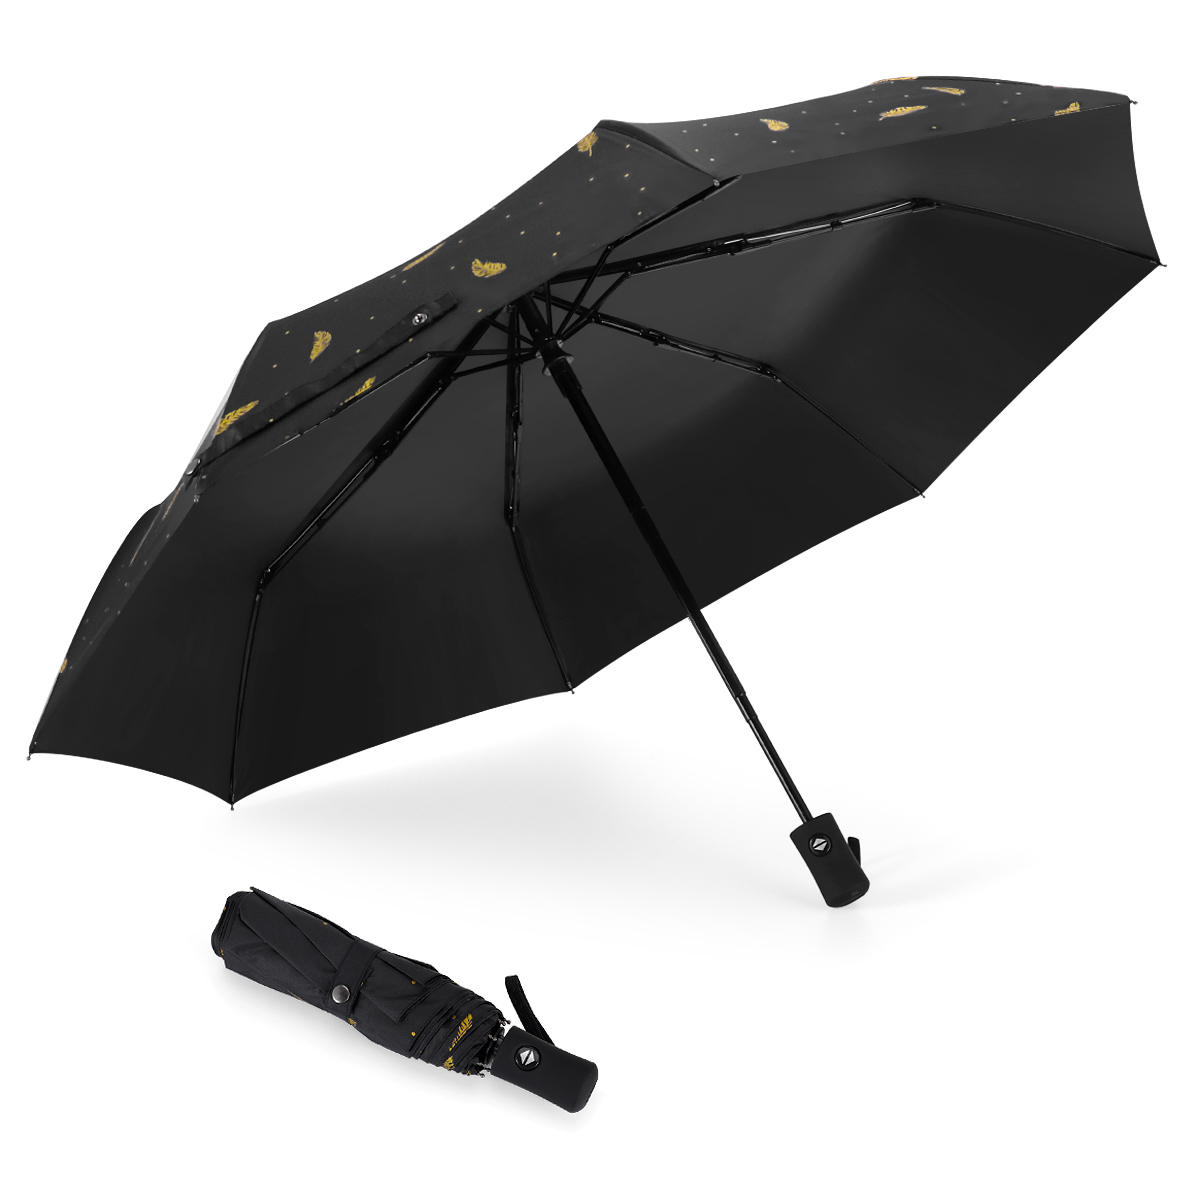 Retro Space Starry Background Compact Travel Umbrella Windproof Reinforced Canopy 8 Ribs Umbrella Auto Open And Close Button Personalized